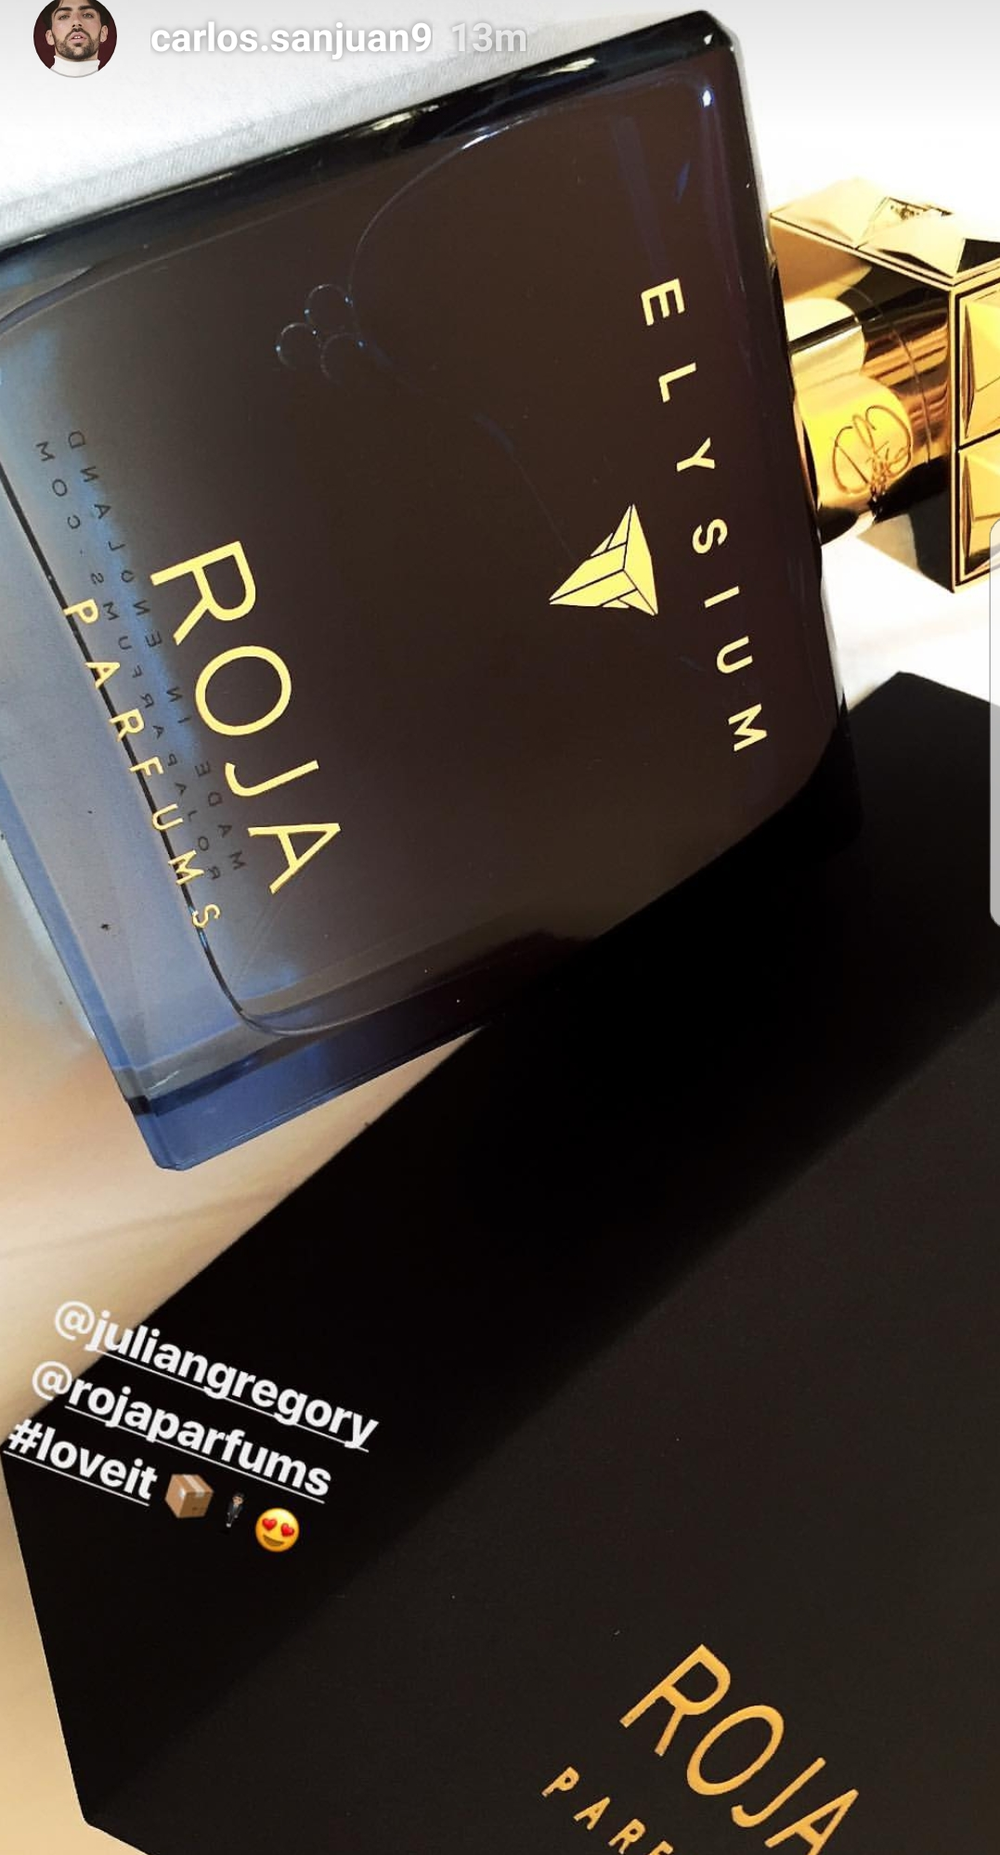 julian gregory pr, pr & marketing, public relations, london pr consultant, fashion pr, roja parfums, influencer seeding, product seeing -Carlos Sanjuan.png